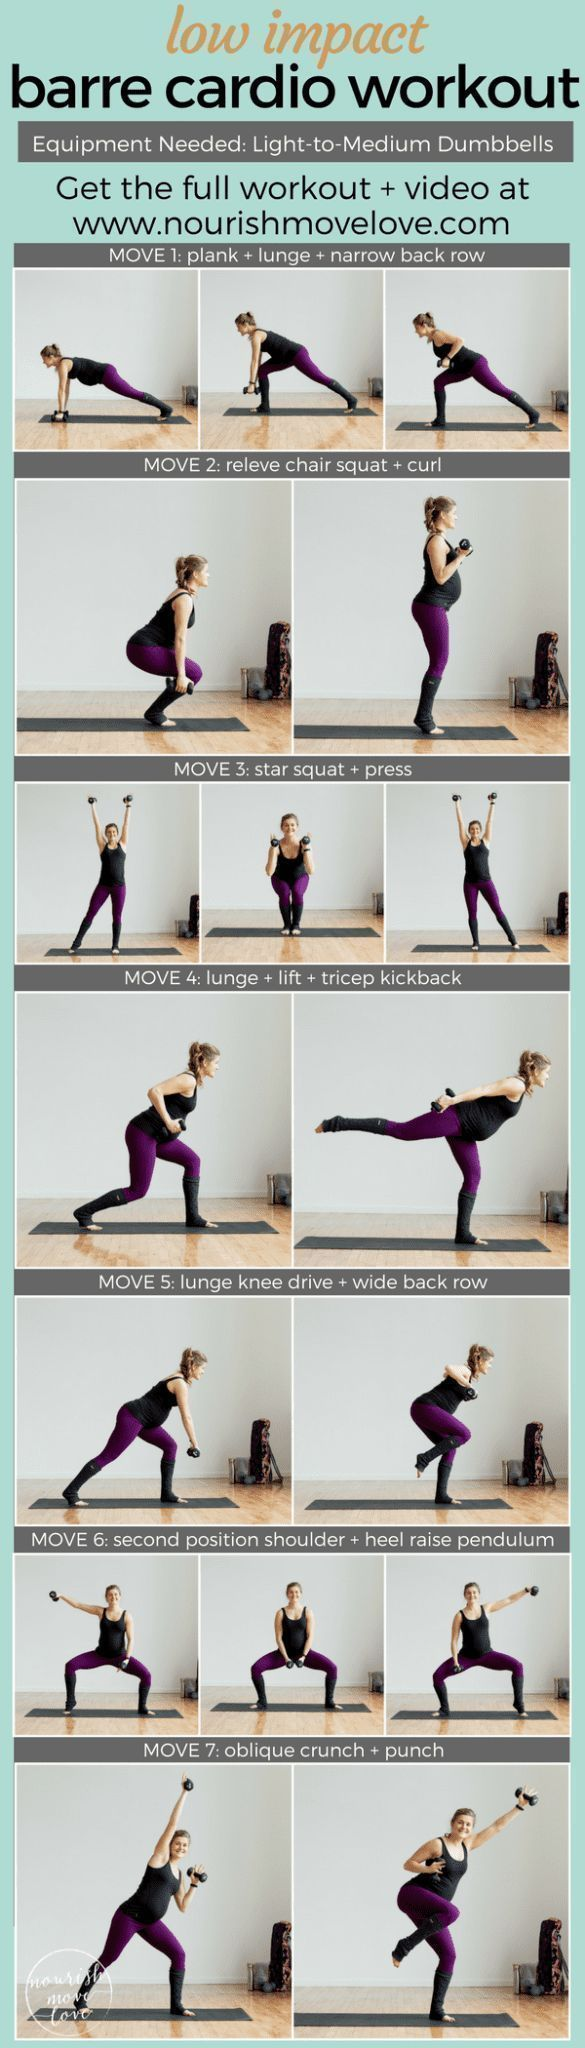 Low Impact Anfänger Barre Cardio Workout Fitness Inspiration #Barre #Begin ... - #Anfänger #Barre #Cardio #Fitness #Impact #Inspiration #prenatalworkouthiit #prenatalworkoutthird #Workout #cardiobarre Low Impact Anfänger Barre Cardio Workout Fitness Inspiration #Barre #Begin ... - #Anfänger #Barre #Cardio #Fitness #Impact #Inspiration #prenatalworkouthiit #prenatalworkoutthird #Workout #cardiobarre Low Impact Anfänger Barre Cardio Workout Fitness Inspiration #Barre #Begin ... - #Anfänger # #cardiobarre